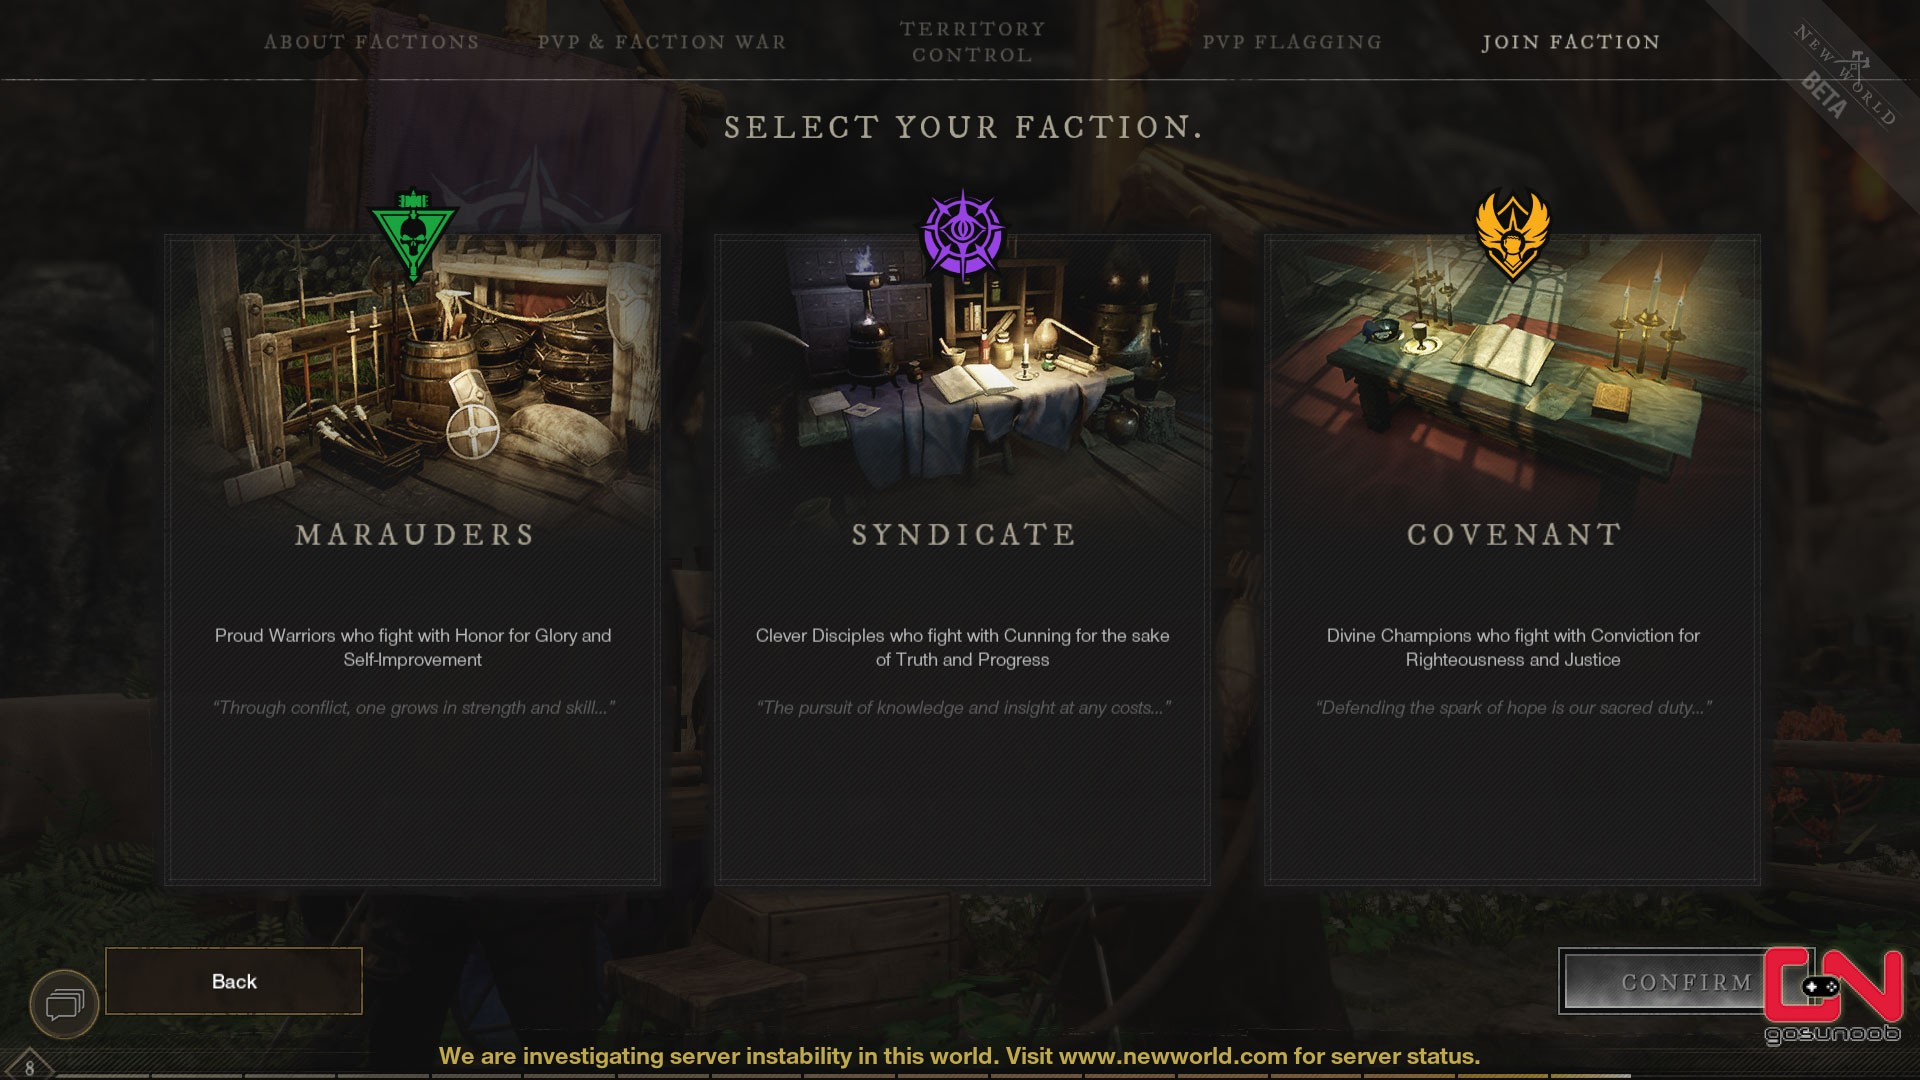 New World Factions - Which Faction to Join